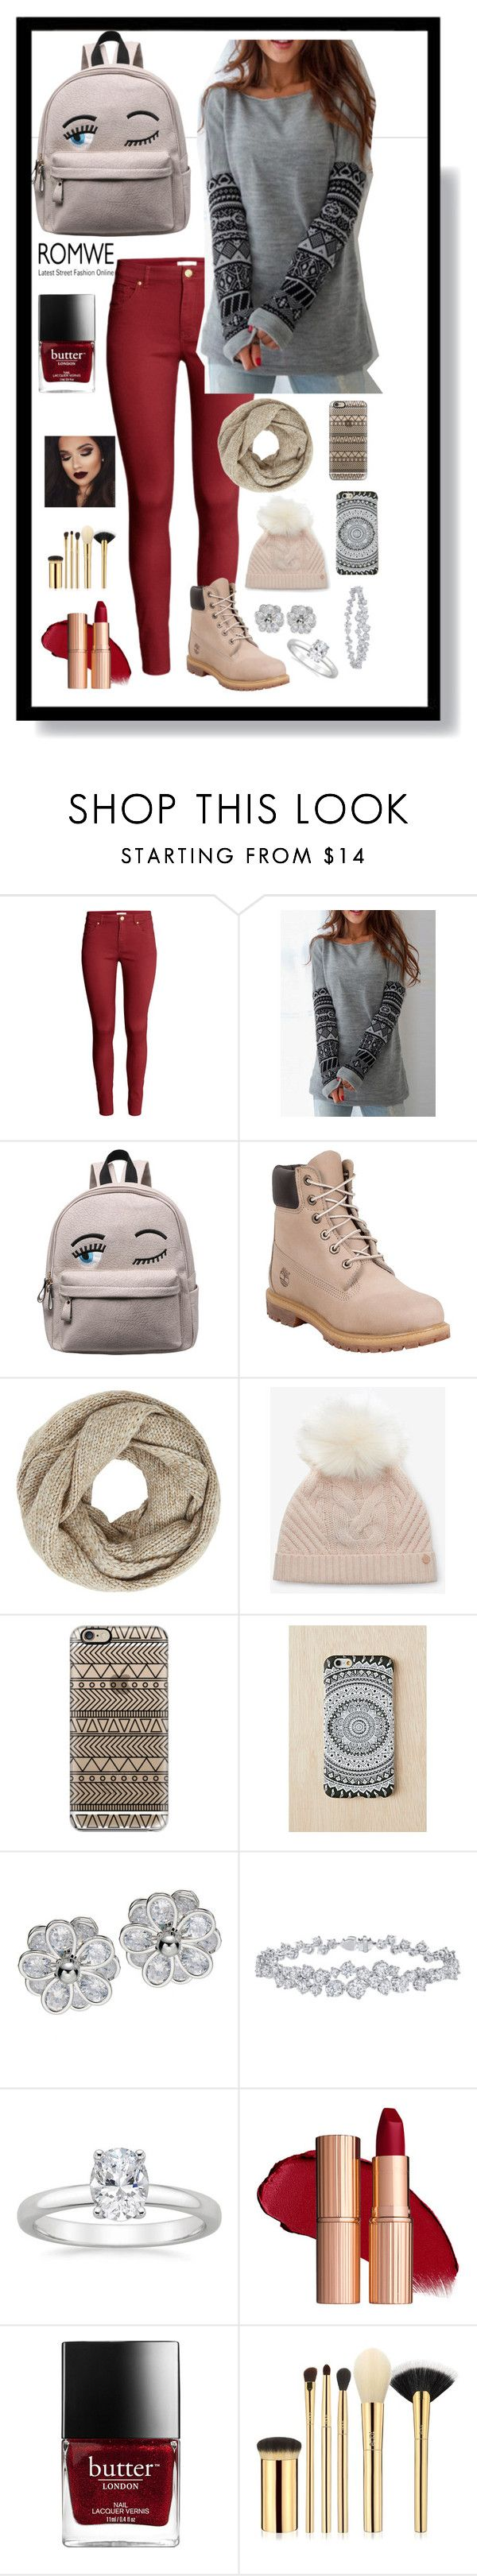 """""""Sweater Weather"""" by kaileewhaley13 ❤ liked on Polyvore featuring H&M, Timberland, John Lewis, Ted Baker, Casetify, Urban Outfitters, Harry Winston and tarte"""